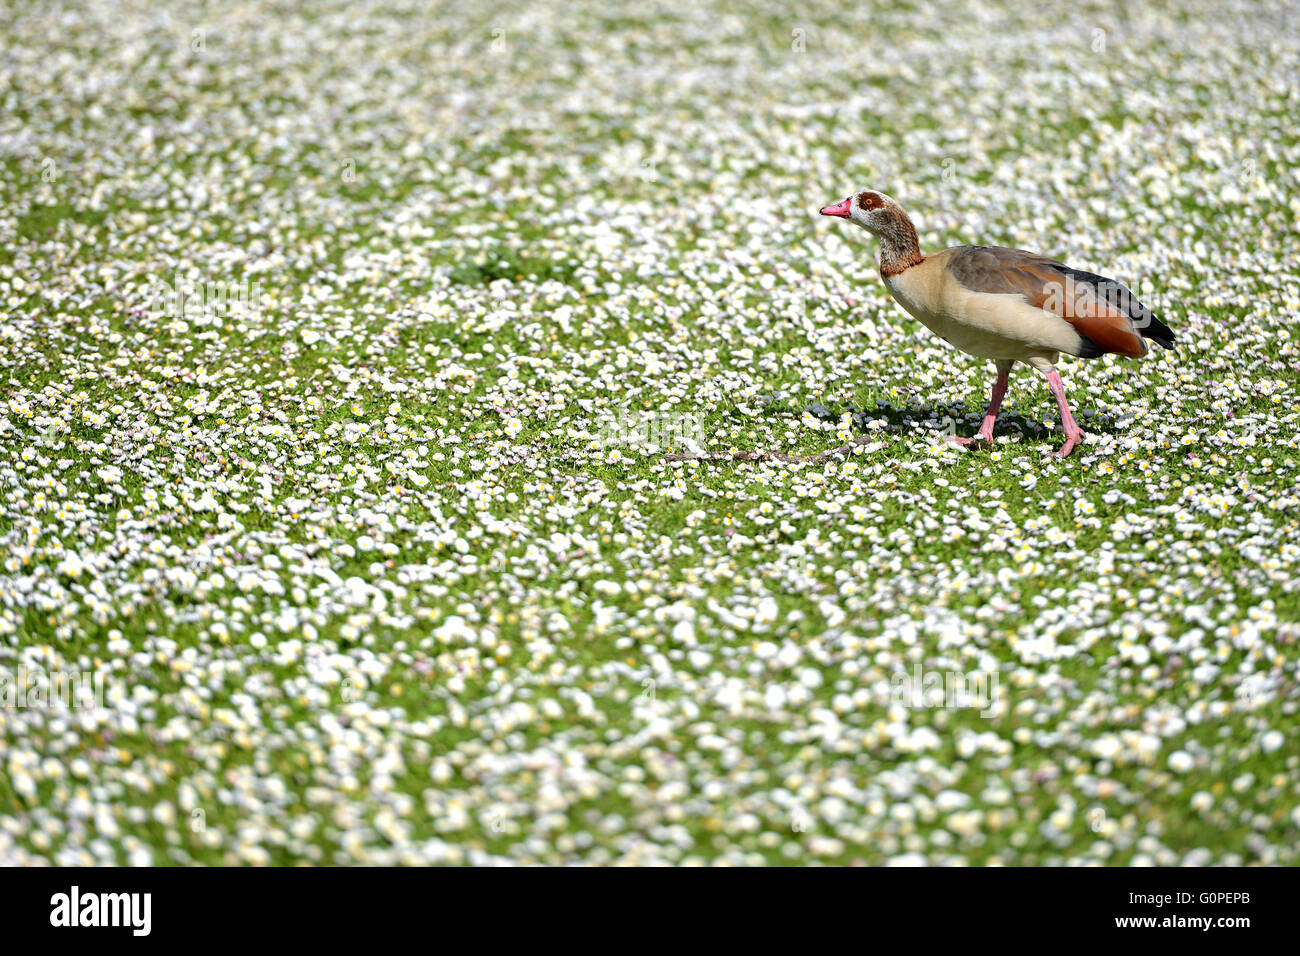 Regents Park, London, UK. 2-May-2016. Not snow but a blanket of daisies covers the ground in Regents Park. © Peter Stock Photo